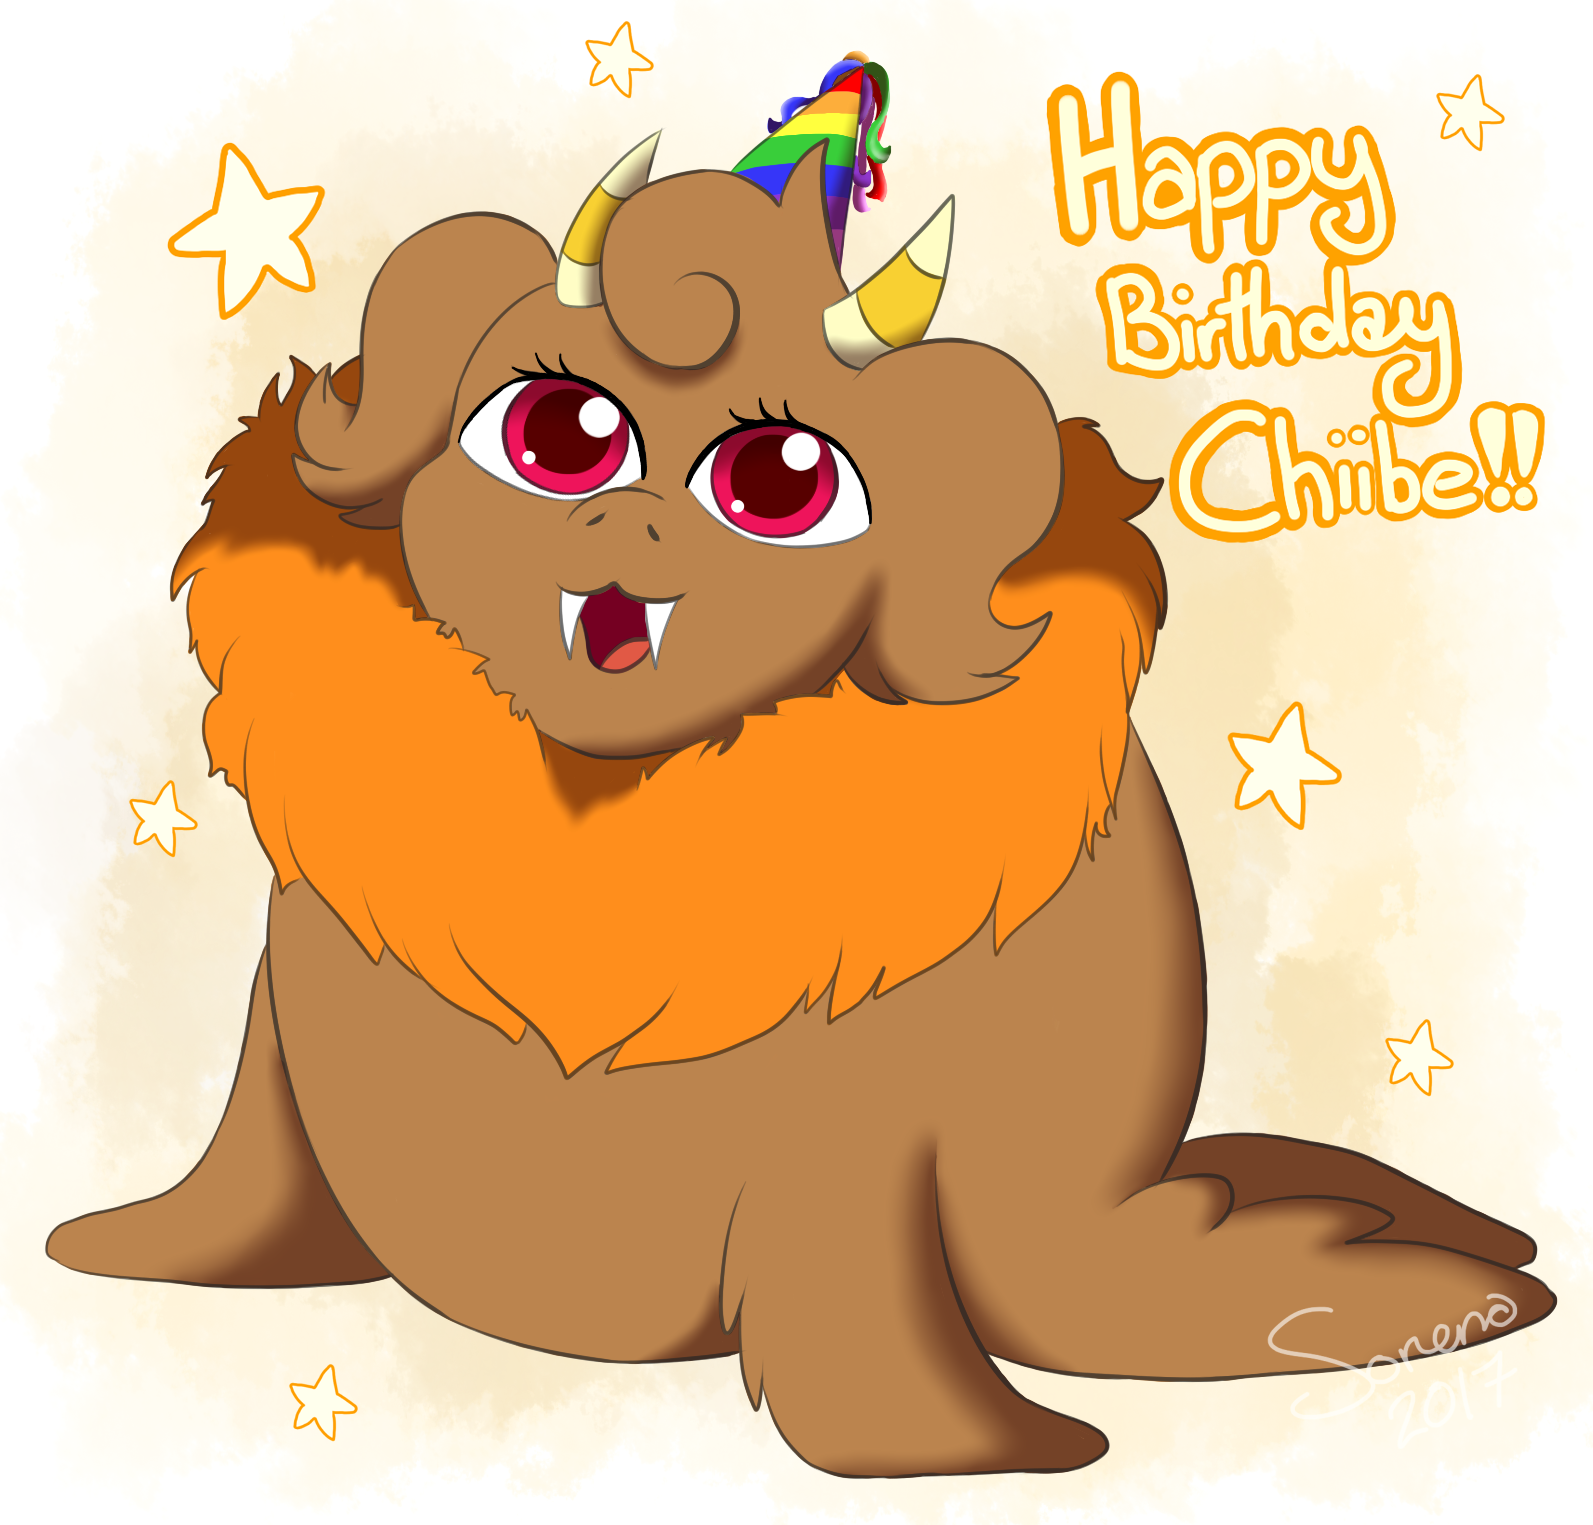 Happy birthday Chiibe